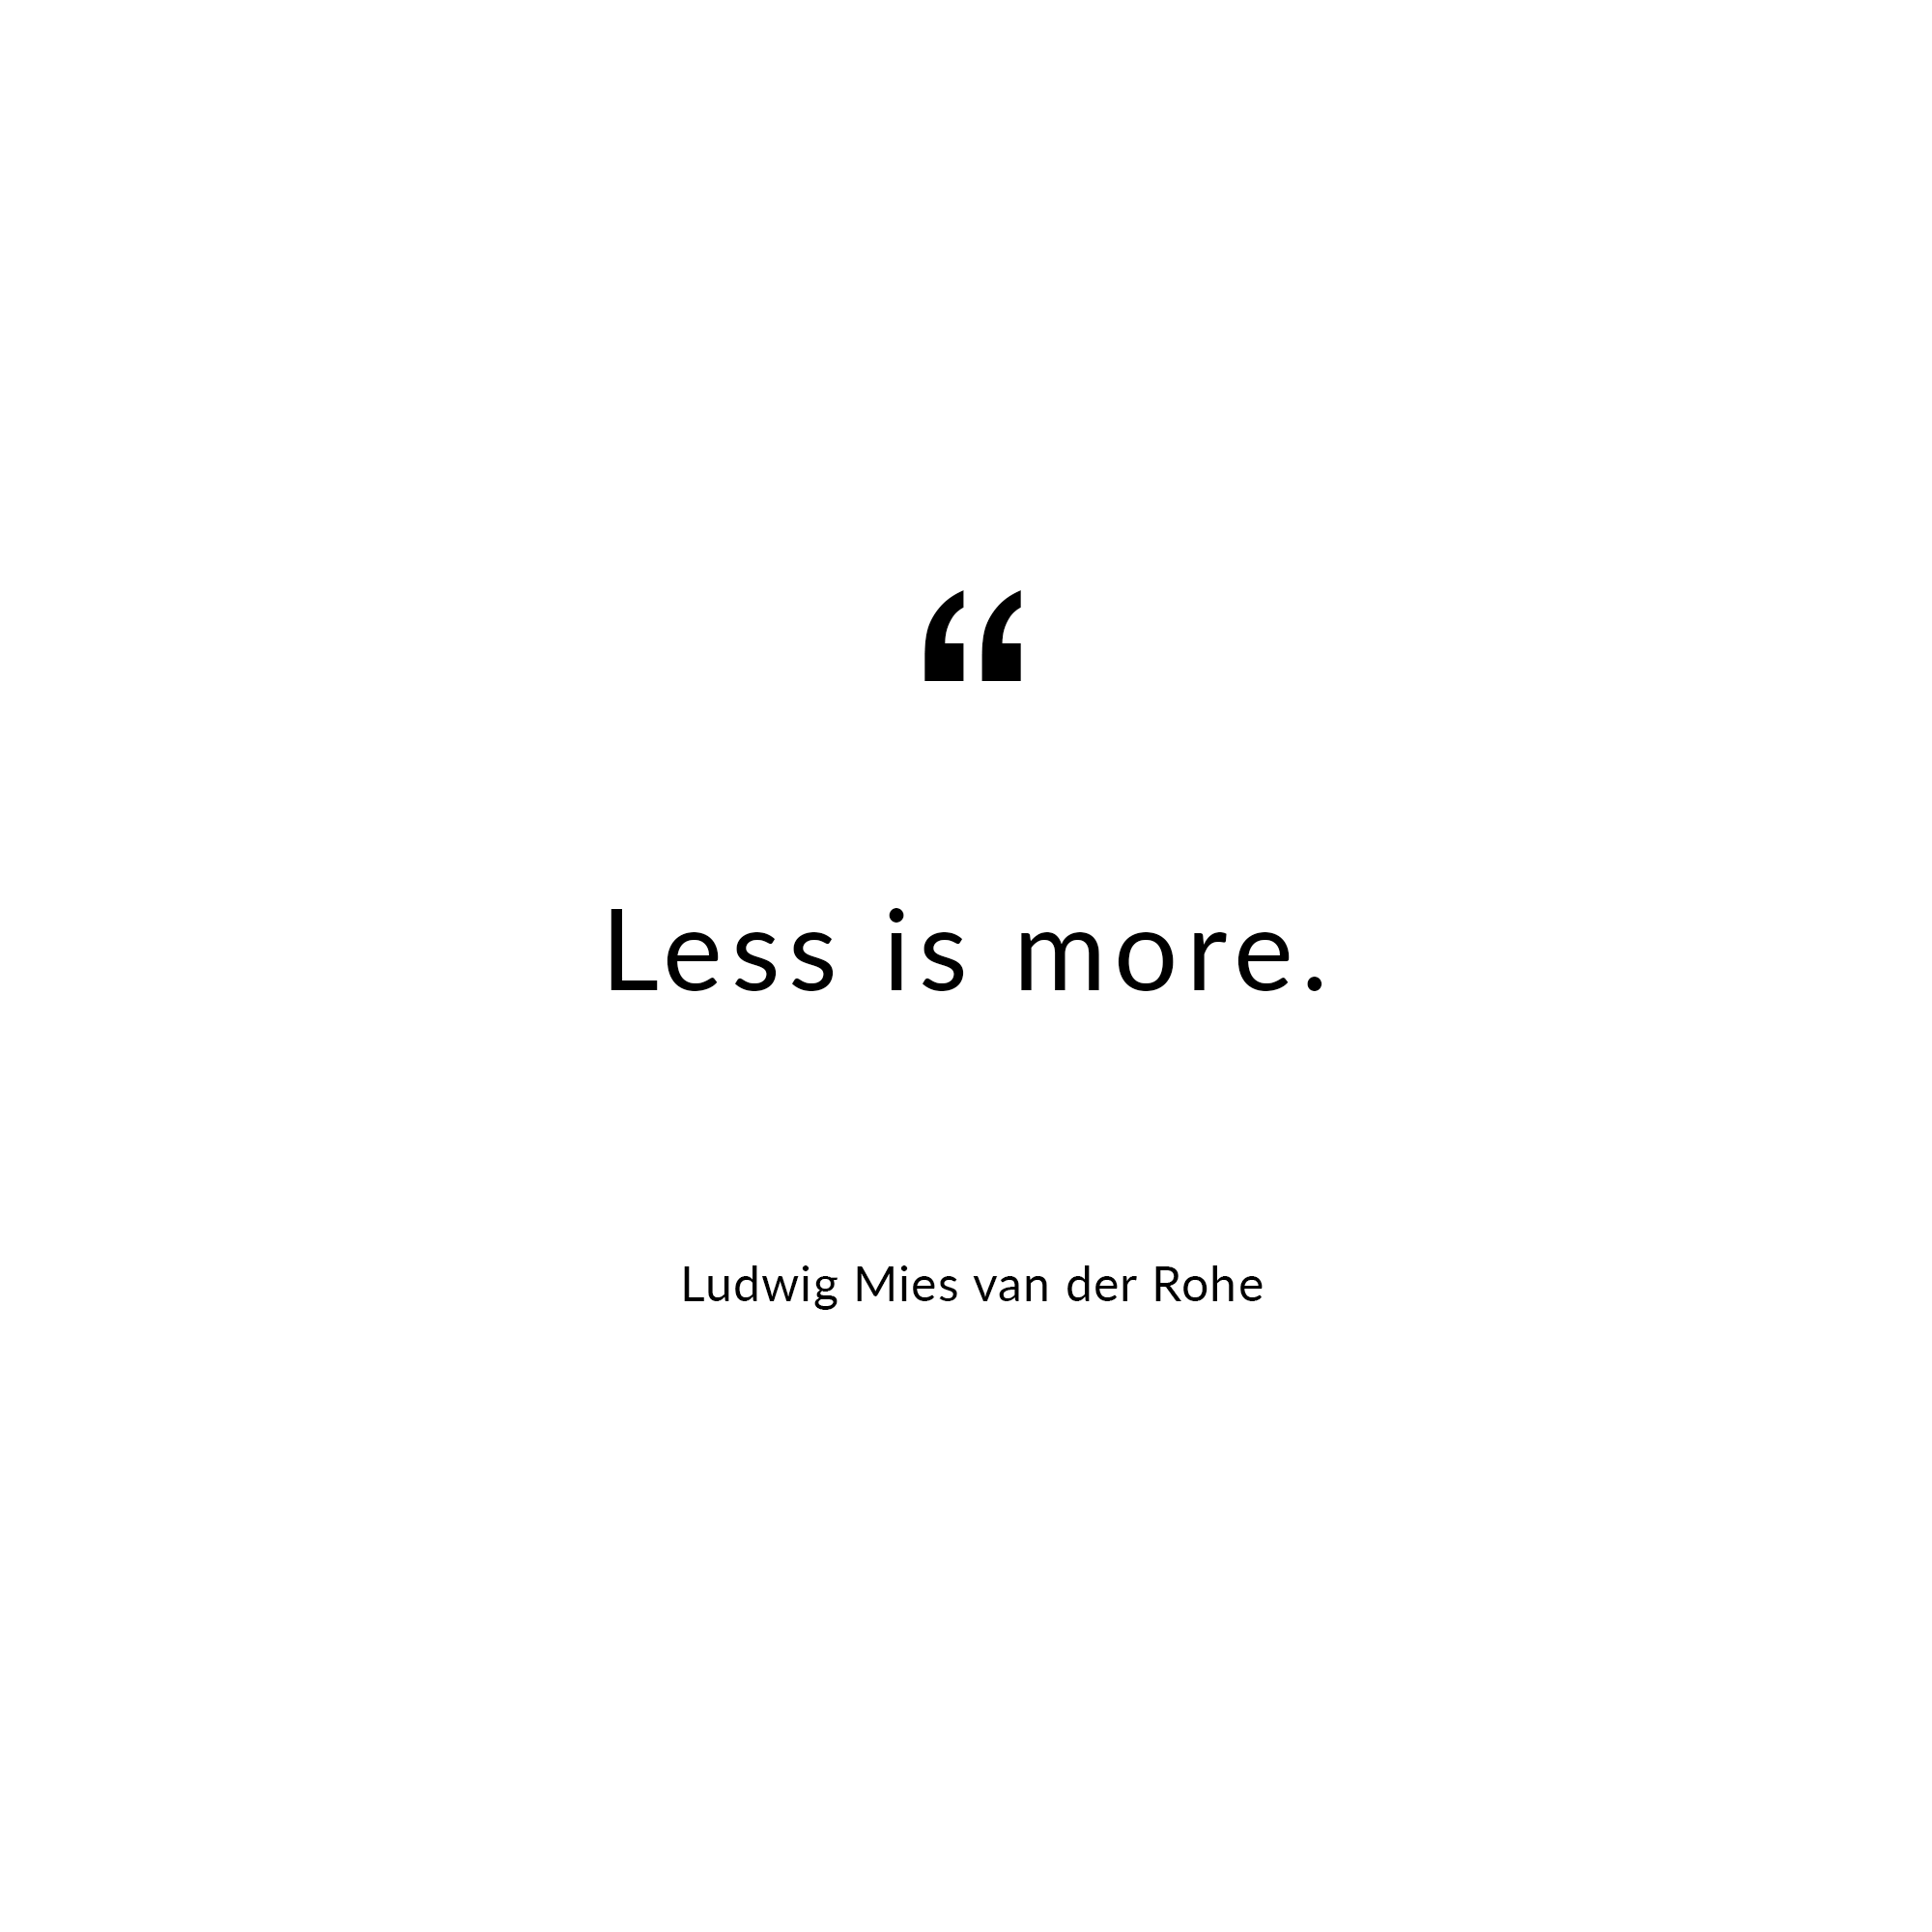 quote by ludwig mies van der rohe mievanderrohe vanderrohe design architecture architect. Black Bedroom Furniture Sets. Home Design Ideas